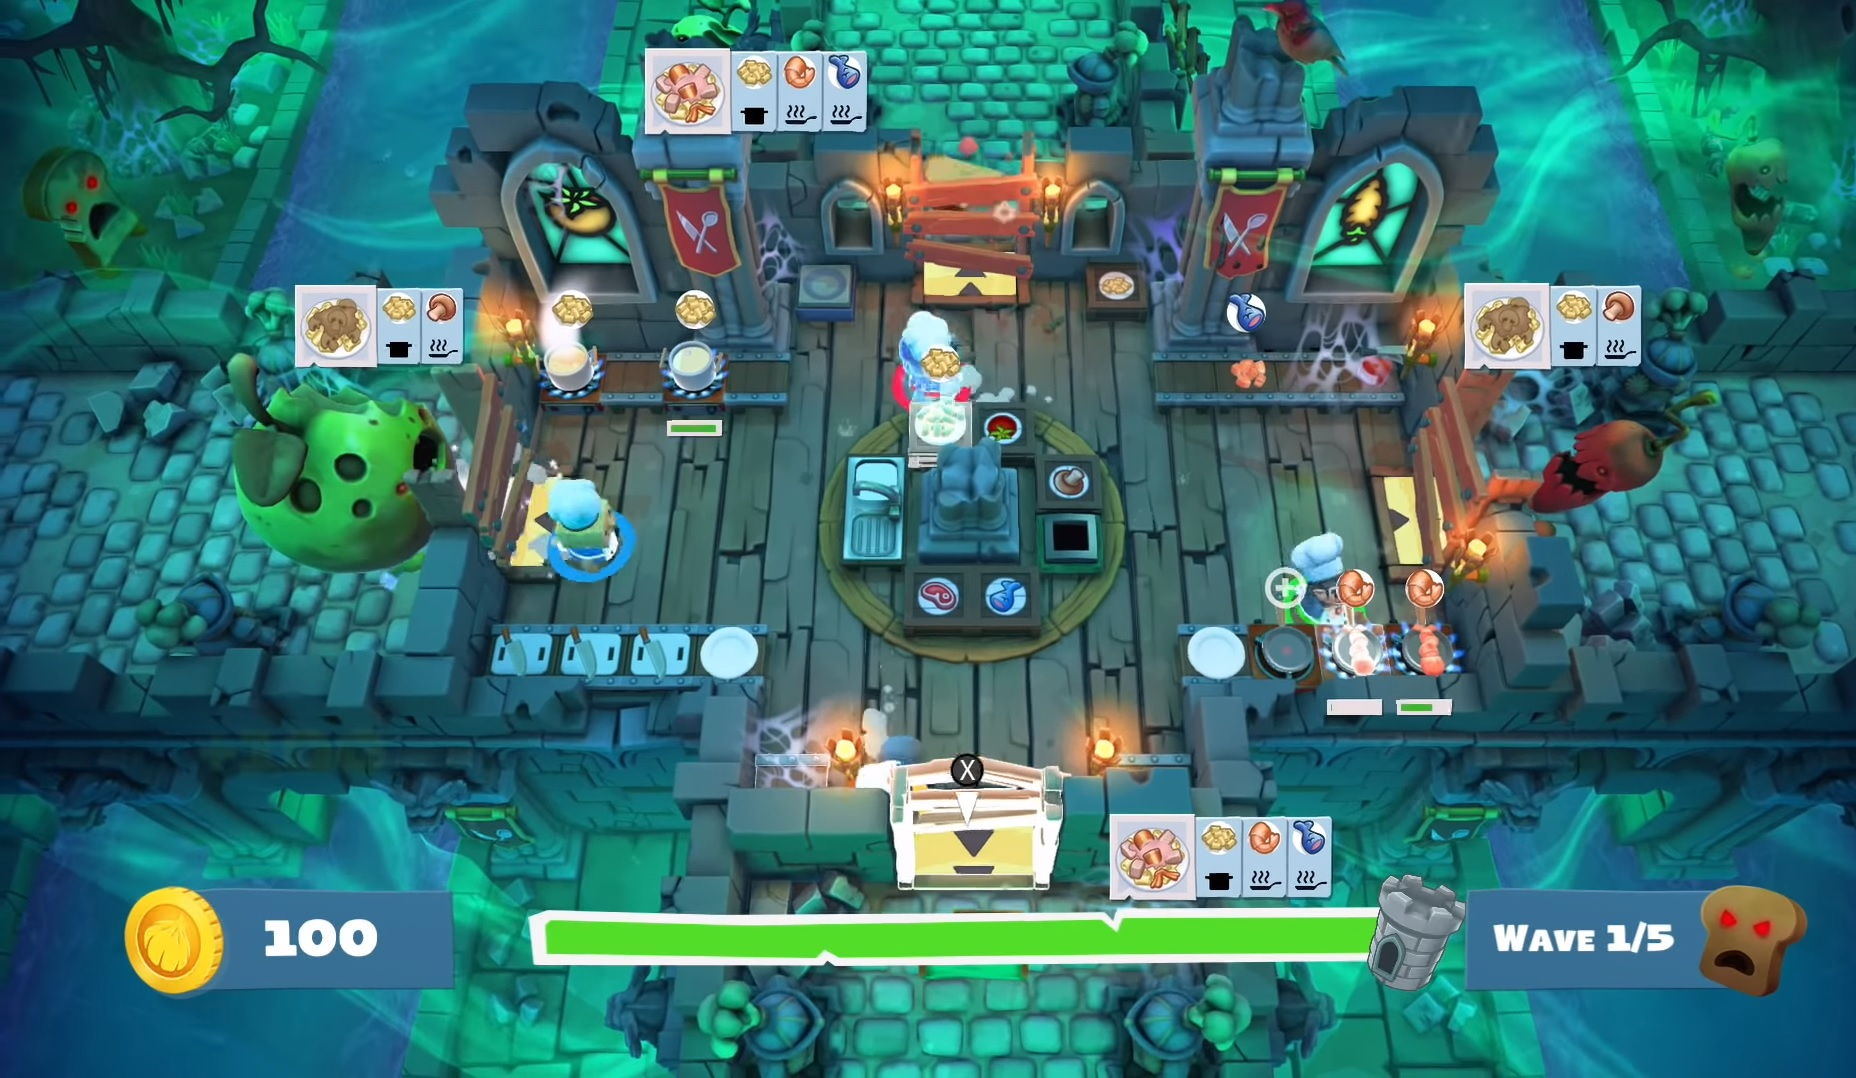 Fight the horde by feeding the horde in new Overcooked 2 DLC - VG247